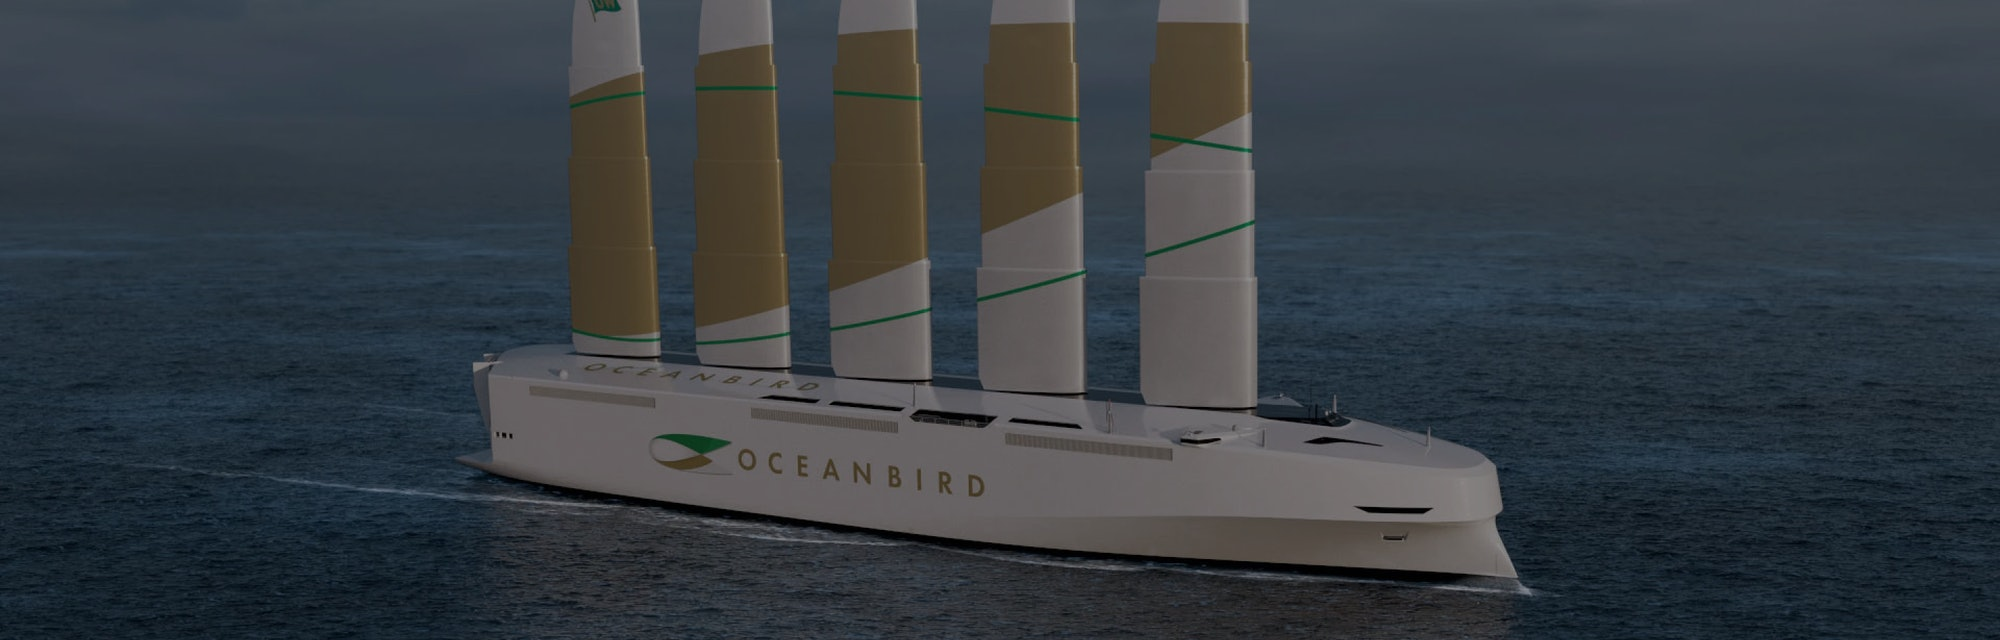 The Oceanbird is a cargo ship powered by wing sails.